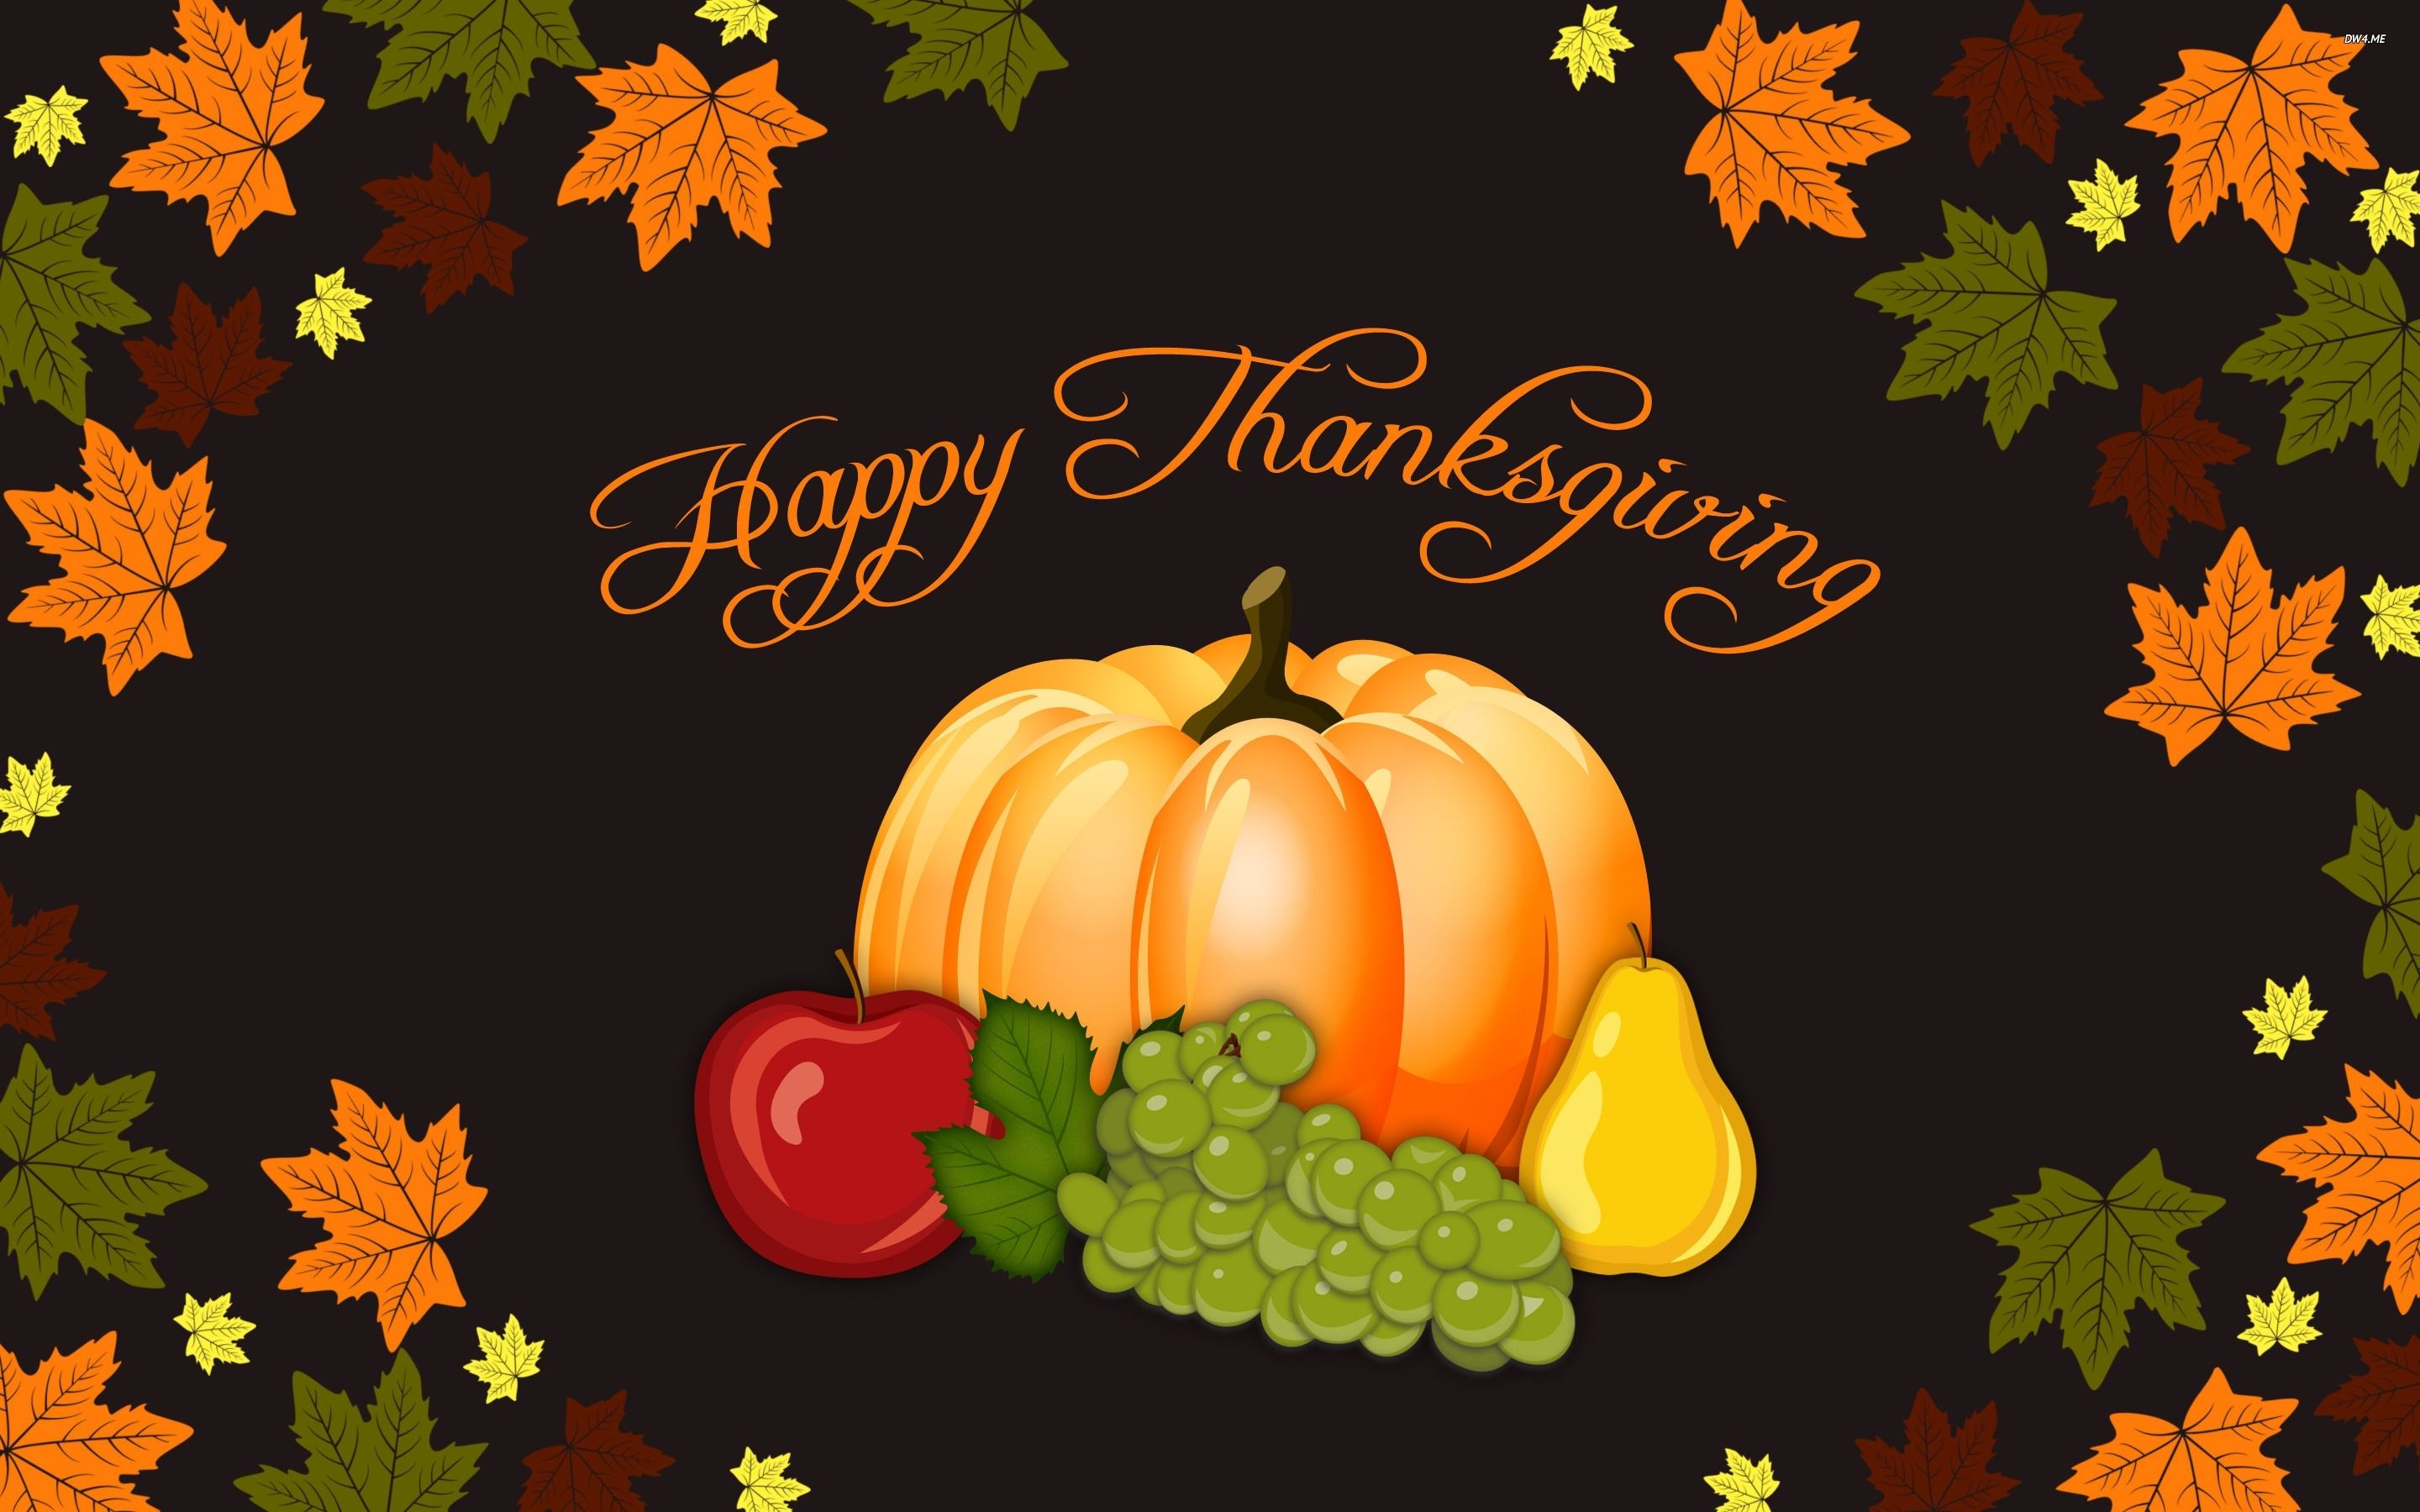 10 Latest Free Happy Thanksgiving Wallpaper Full Hd 1080p For Pc